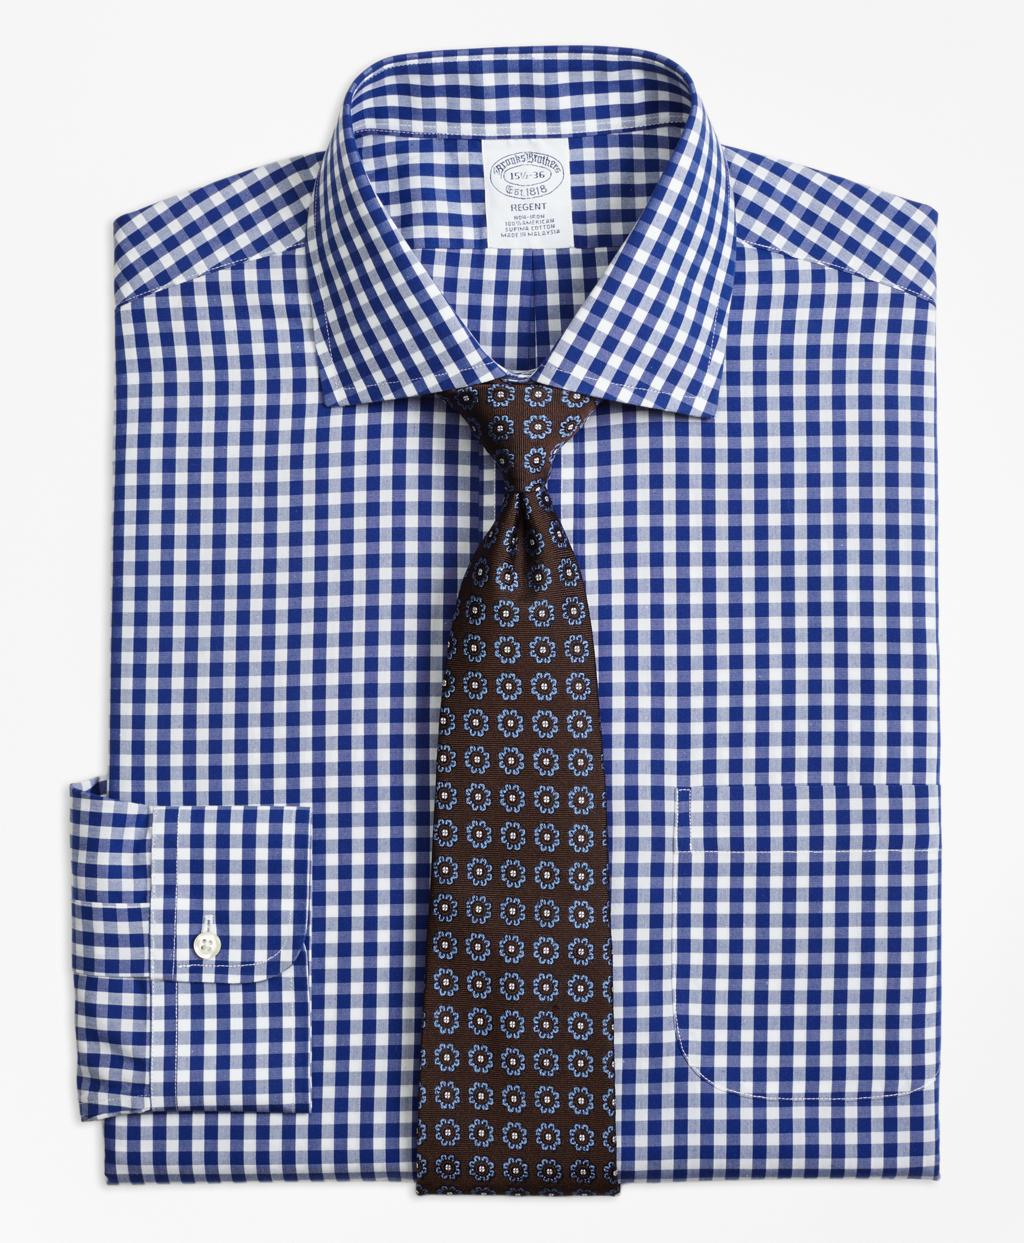 Lyst brooks brothers non iron regent fit gingham dress for Brooks brothers dress shirt fit